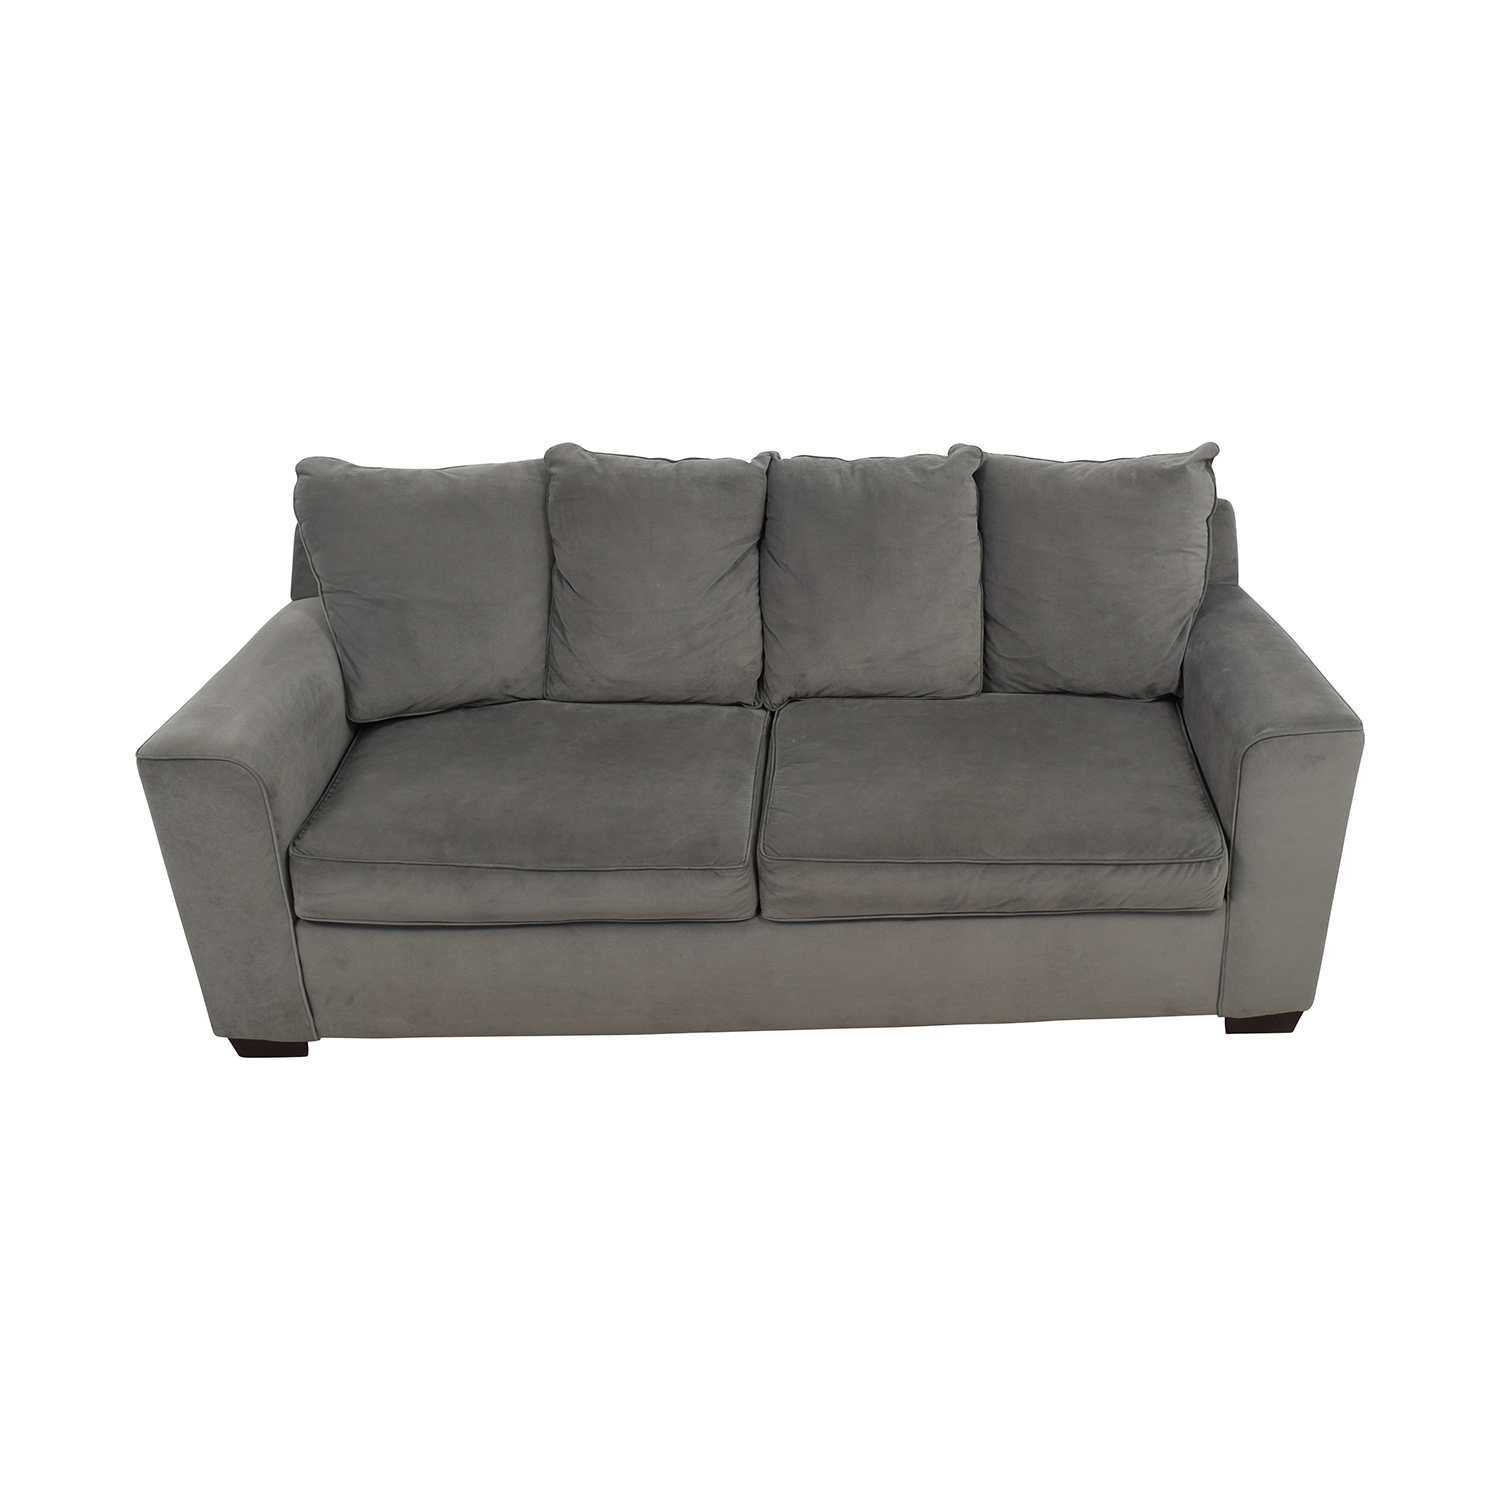 Jennifer Convertibles Jennifer Convertibles Grey Modern Couch Sofas